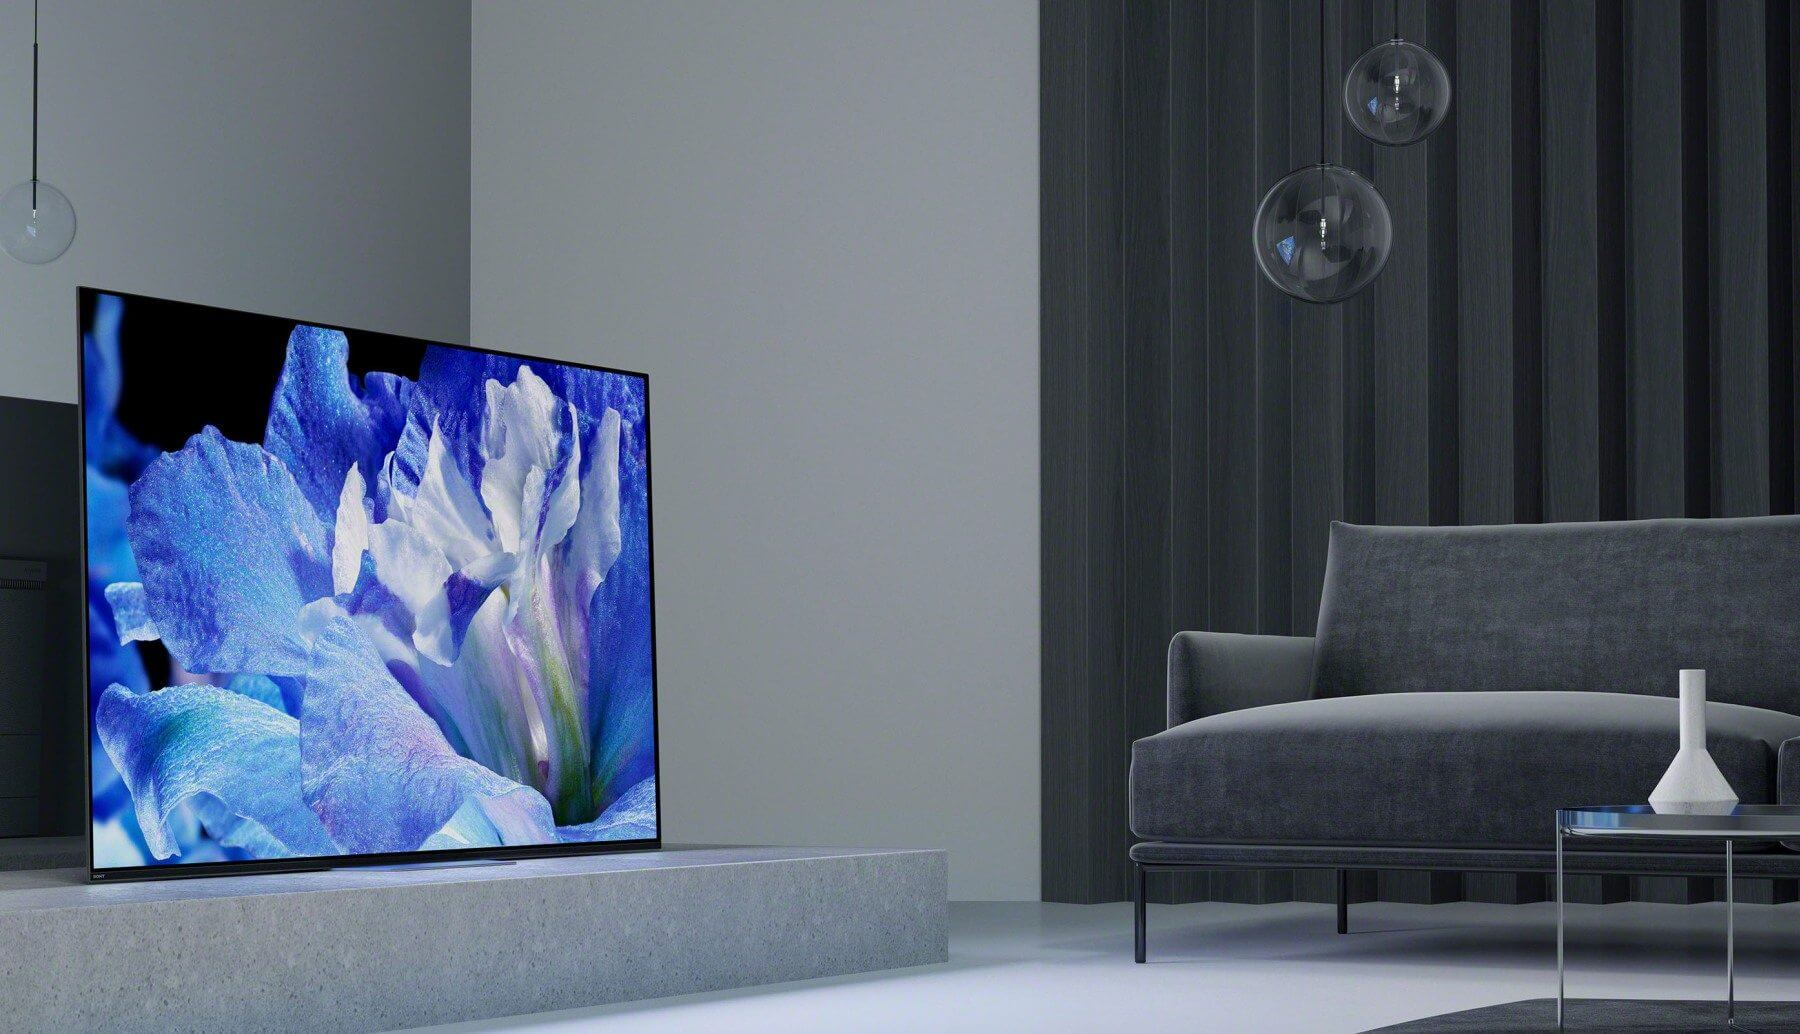 FY18Graphic In Situation A8F 1800 - CES 2018: Sony anuncia novas séries de TVs OLED e LCD 4K HDR